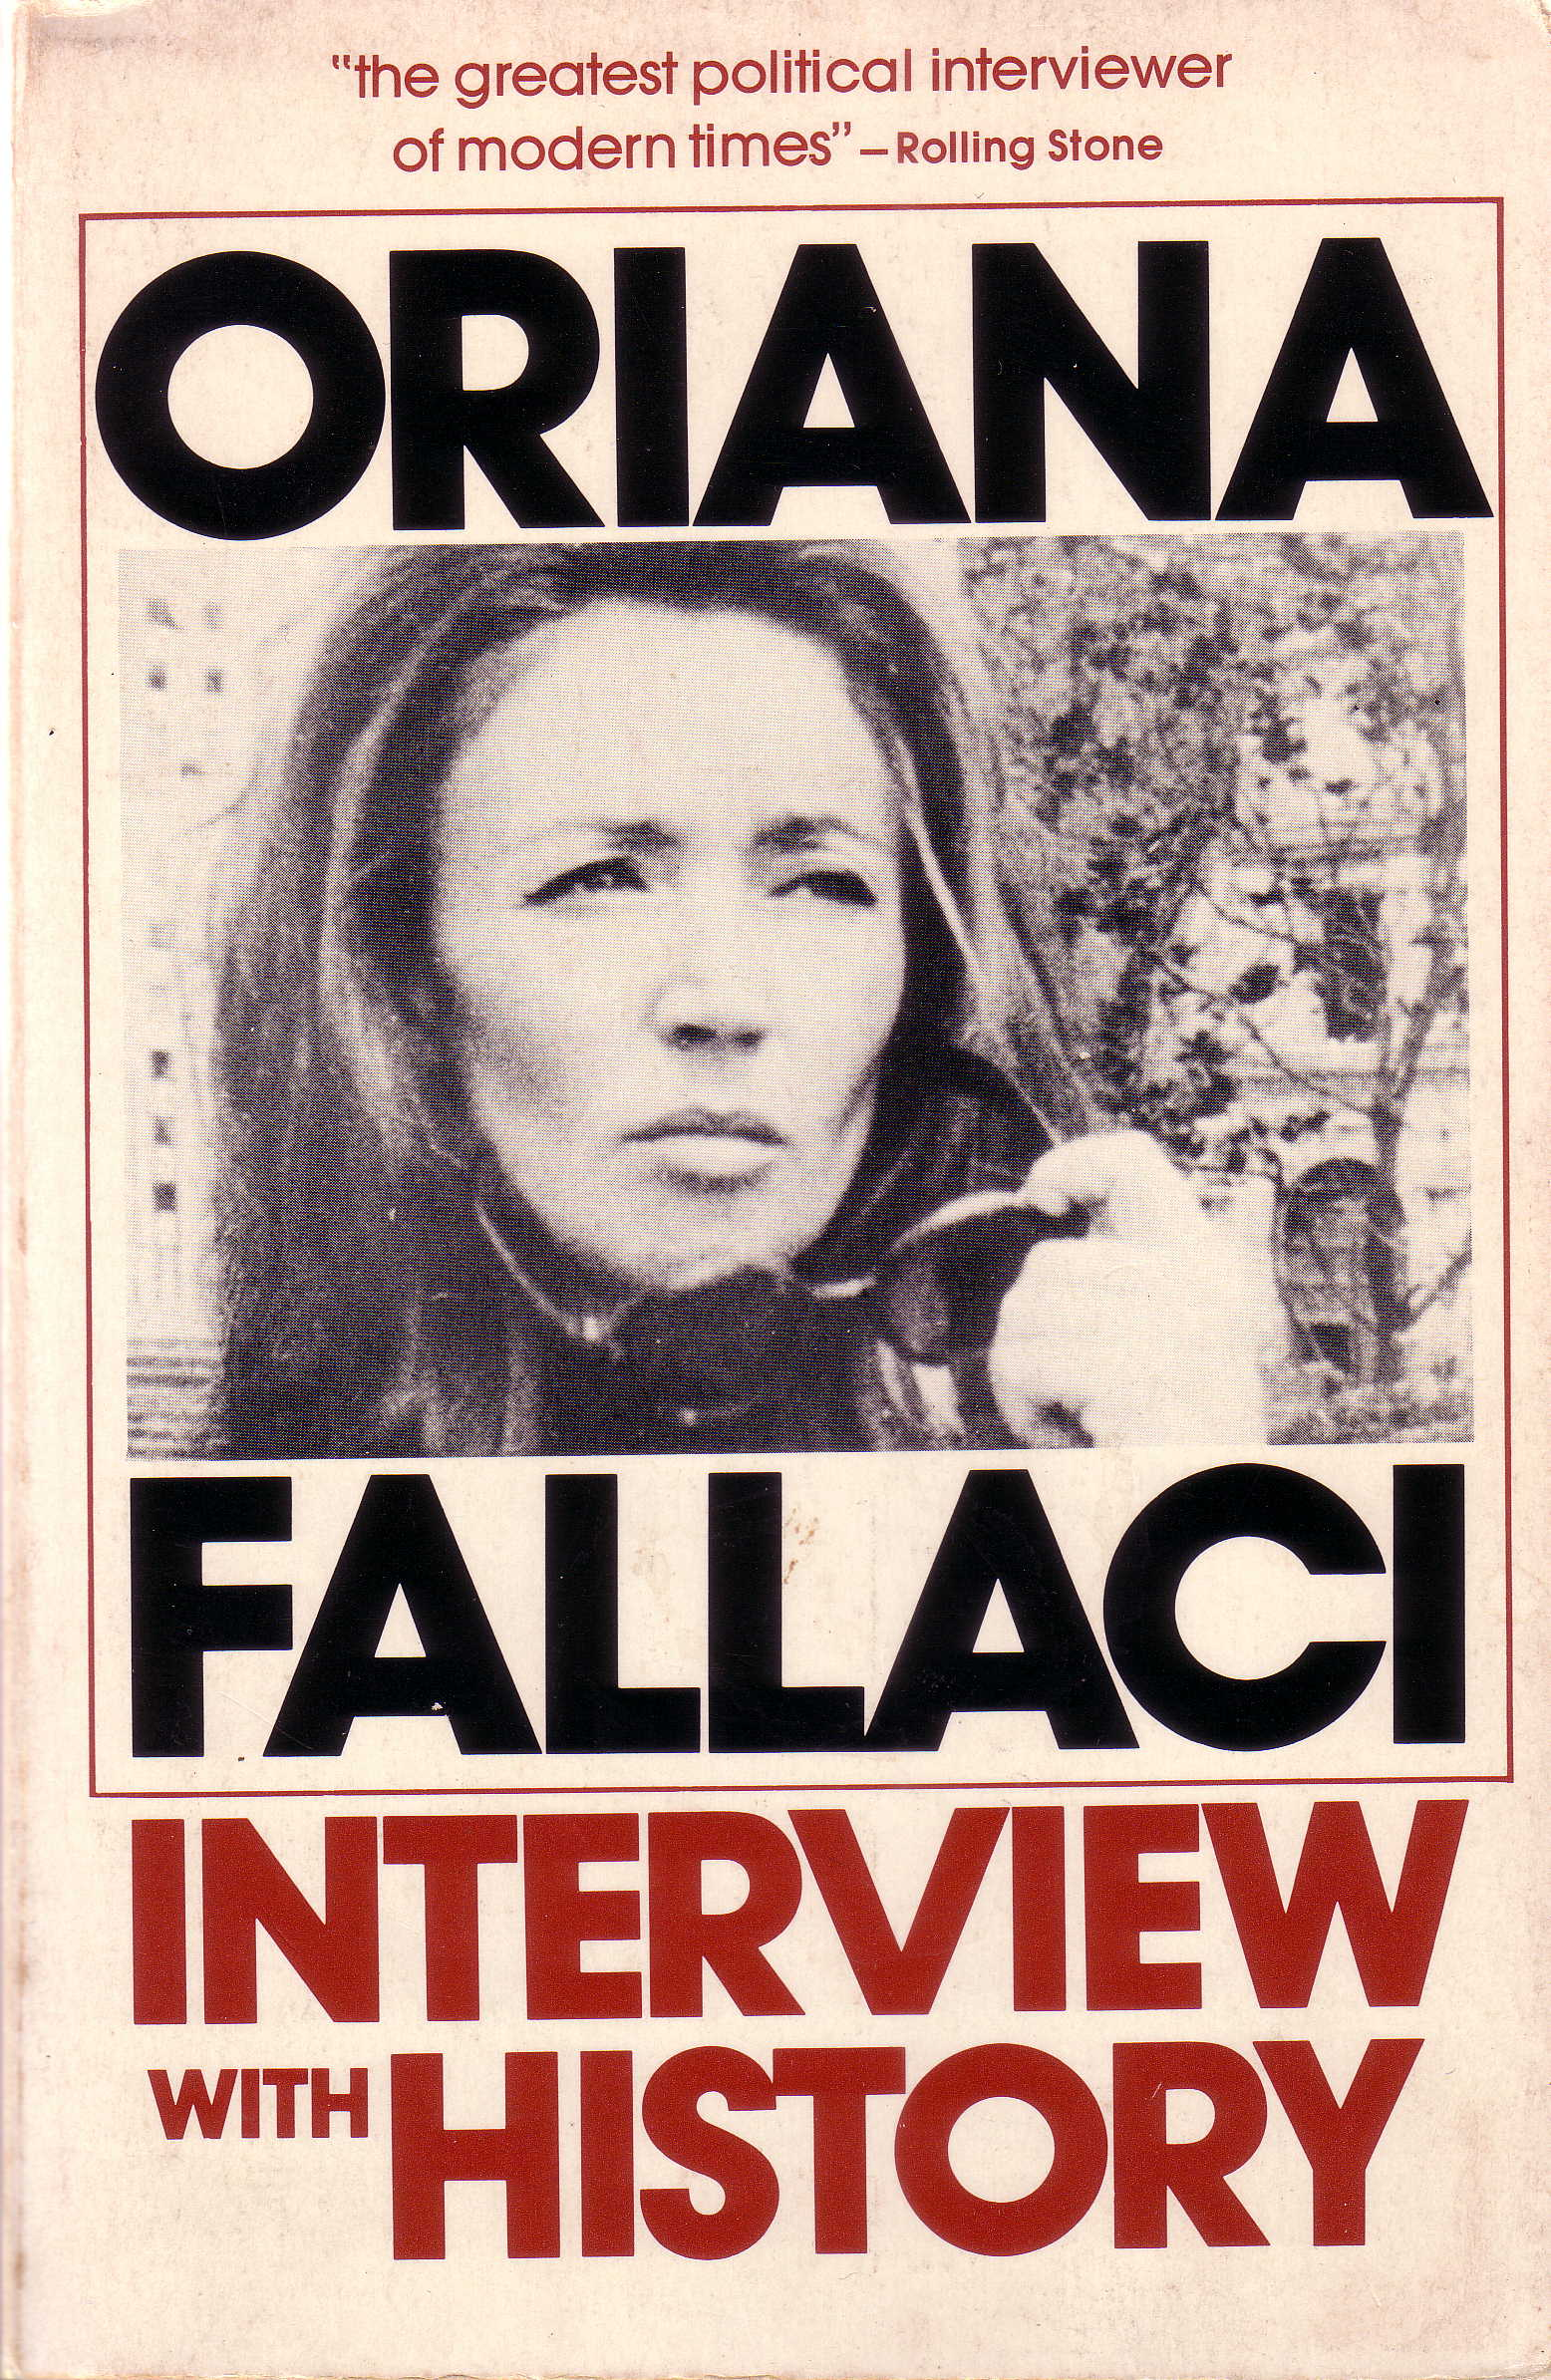 Oriana Fallaci Interview with History book cover